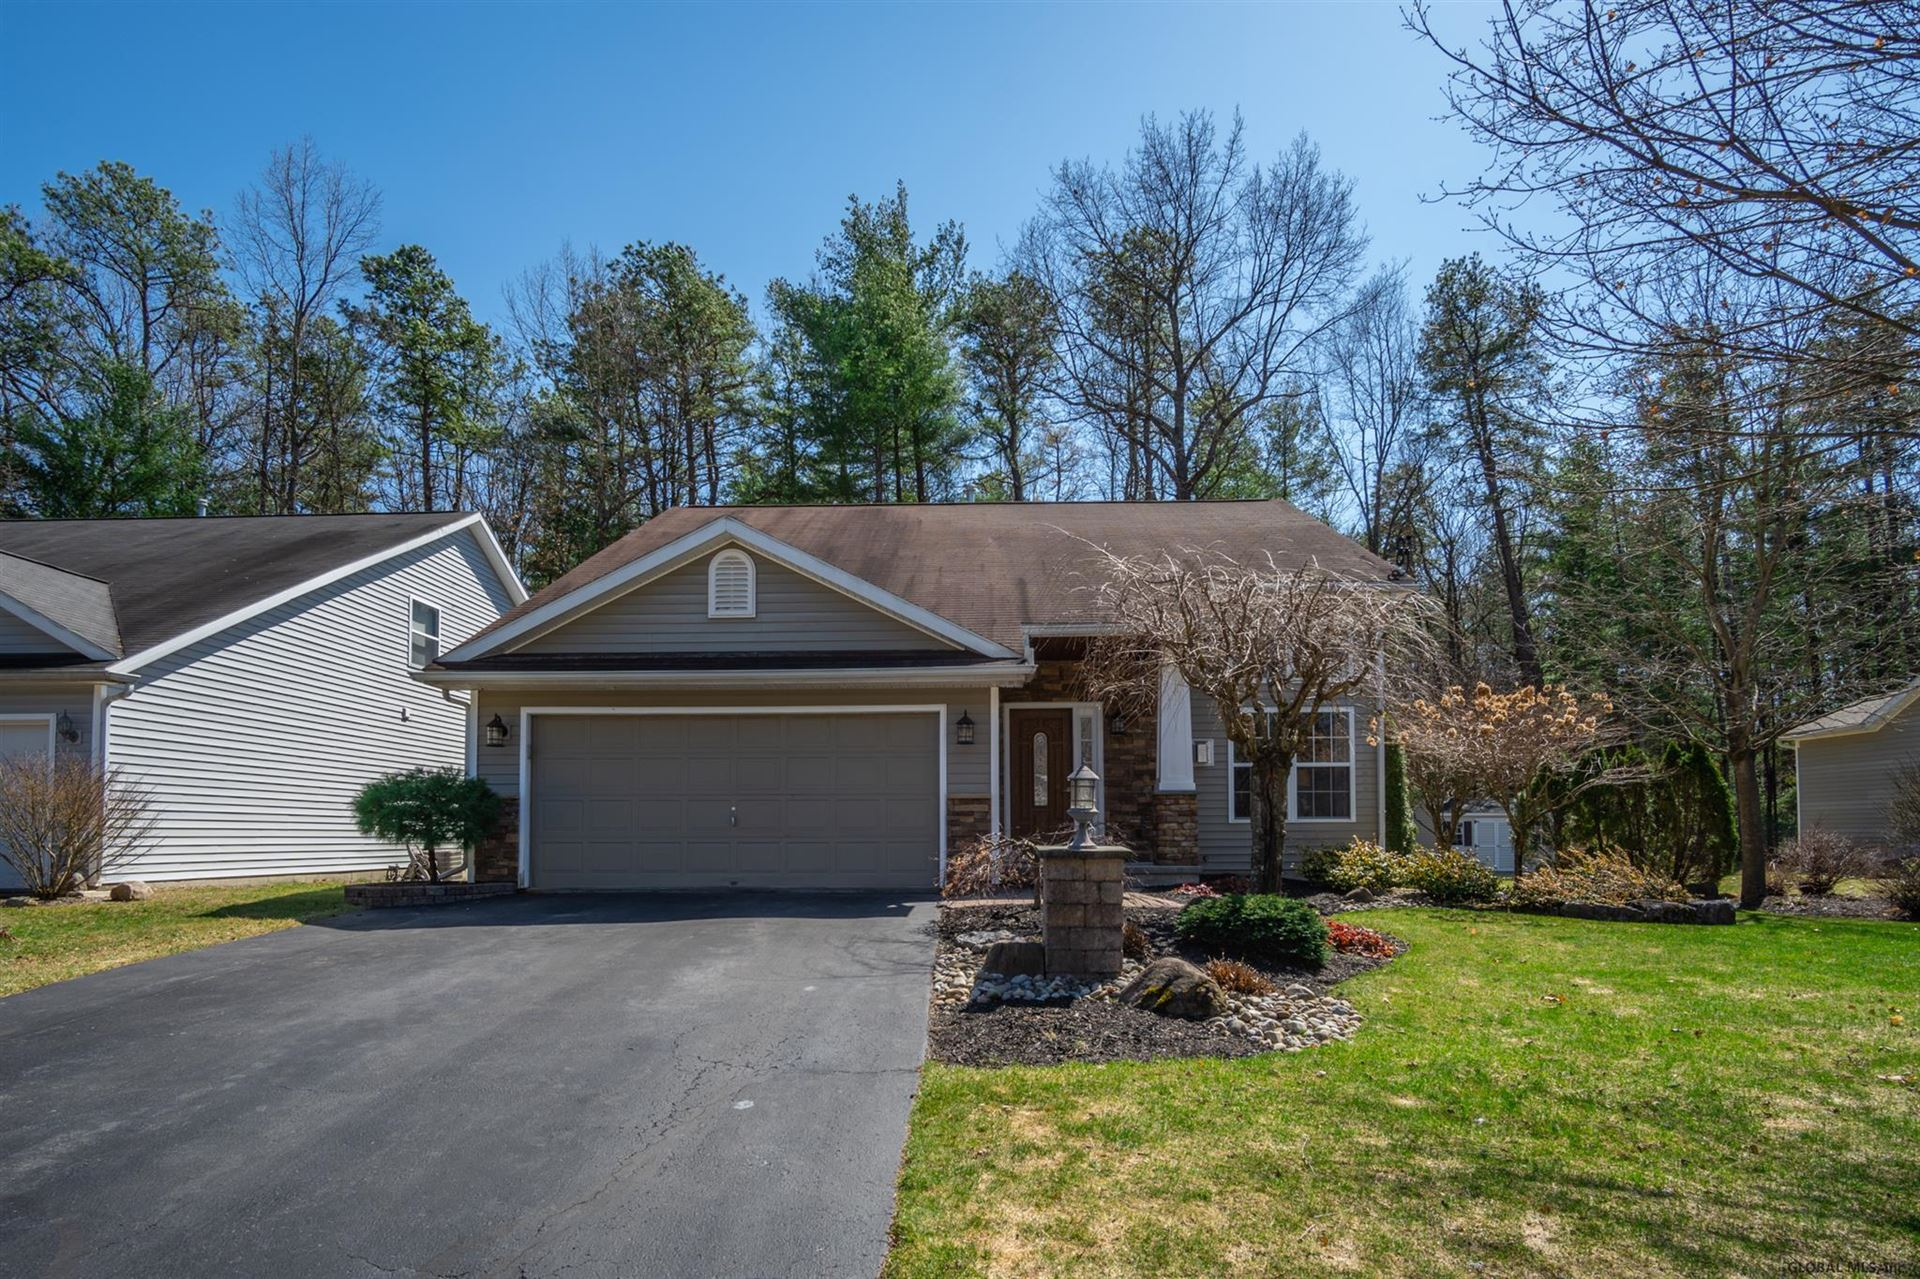 19 WOOD THRUSH CT, Ballston Spa, NY 12020 - #: 202115422